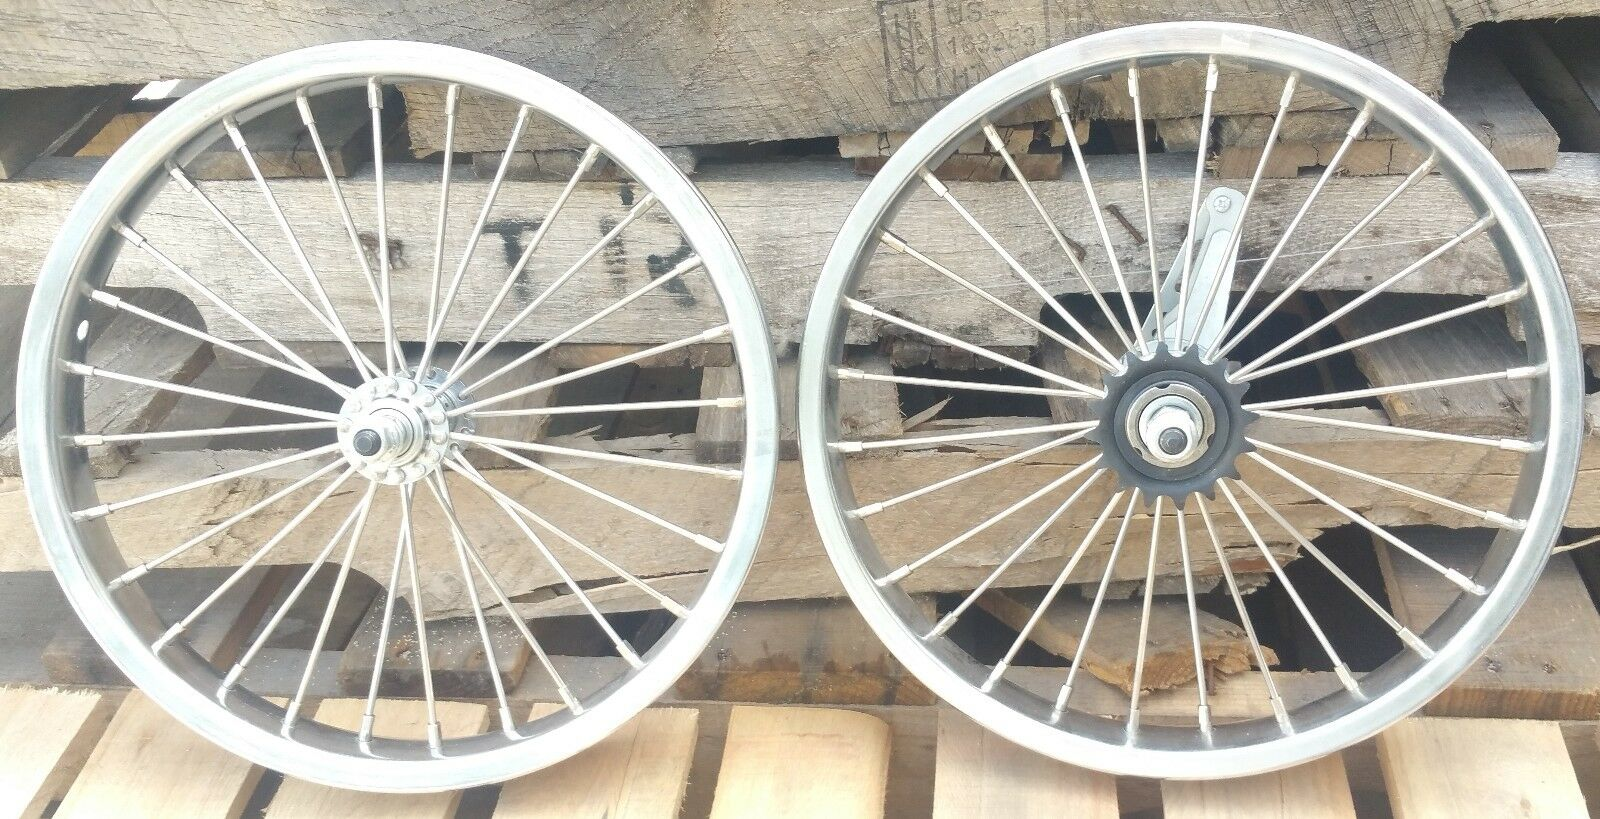 16 inch Front Rear Heavy Duty bicycle wheelset 10g spokes Coaster Brake 16x2.125